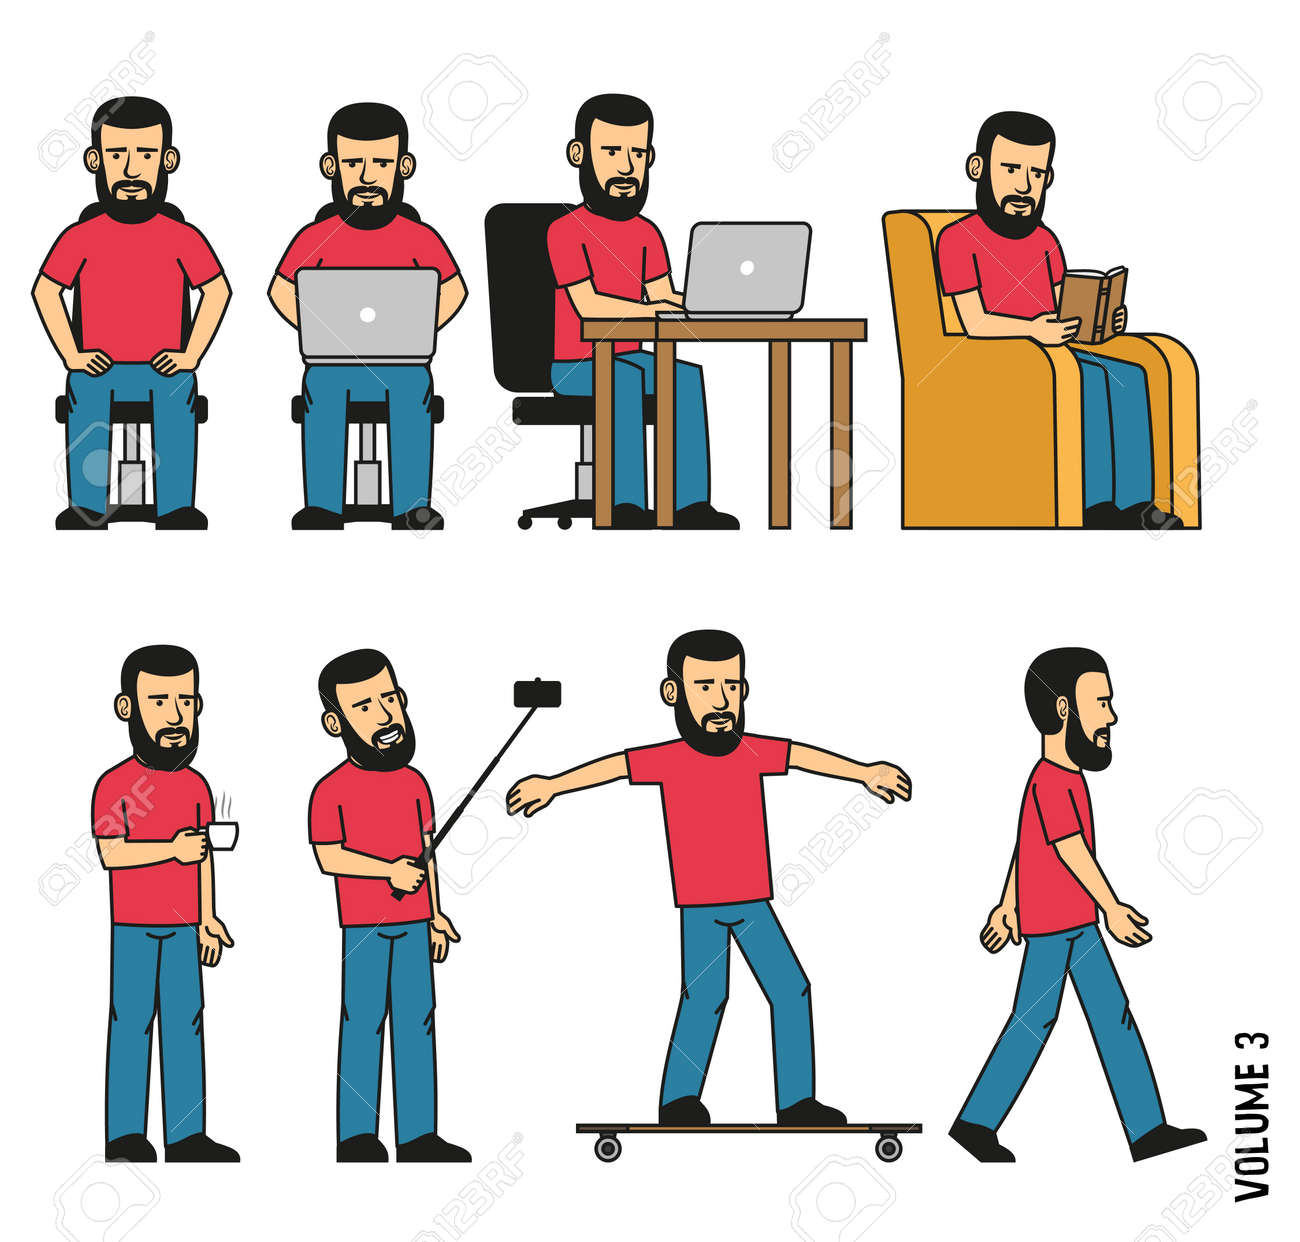 Man with beard sits, works on laptop, reads book in  chair, makes selfie, drinks coffee, rides longboard. Vector illustration. It can be easily disassembled  on body parts. Stock Vector - 86143906